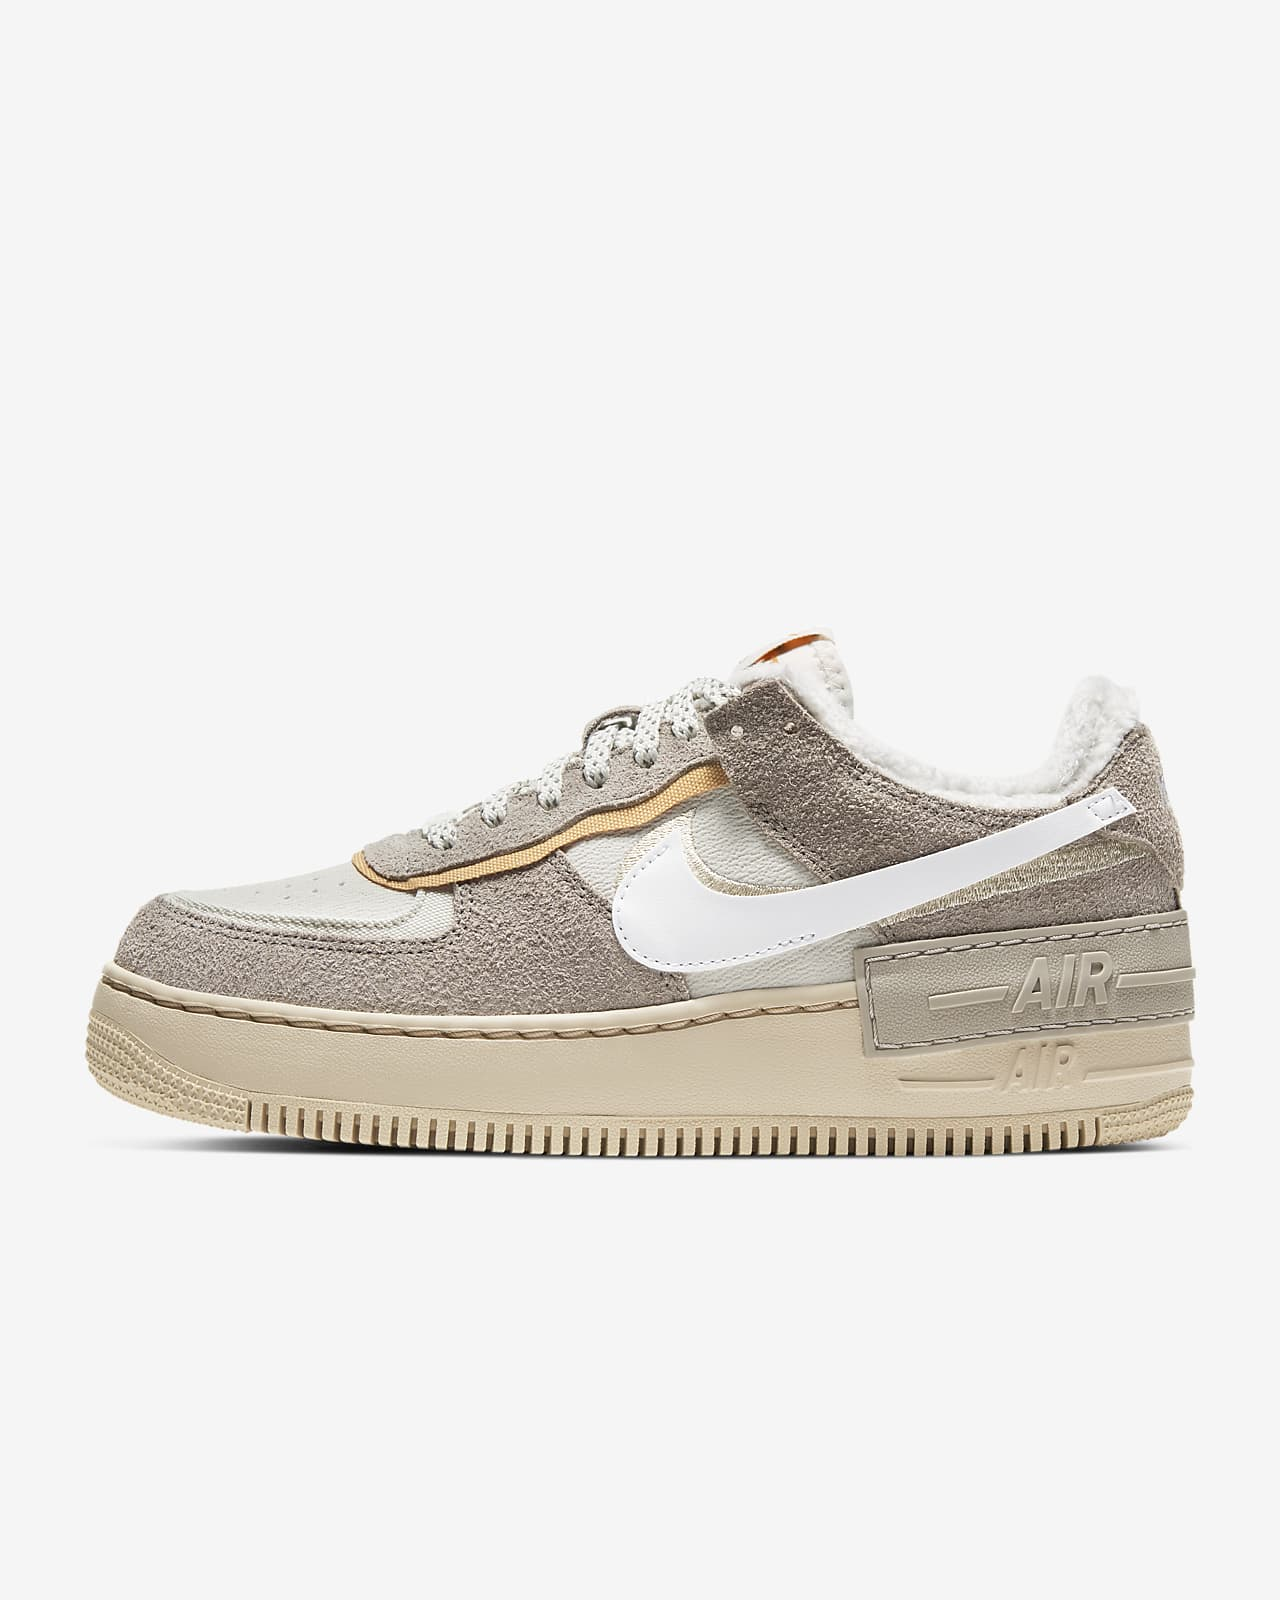 Nike Air Force 1 Shadow Women's Shoe